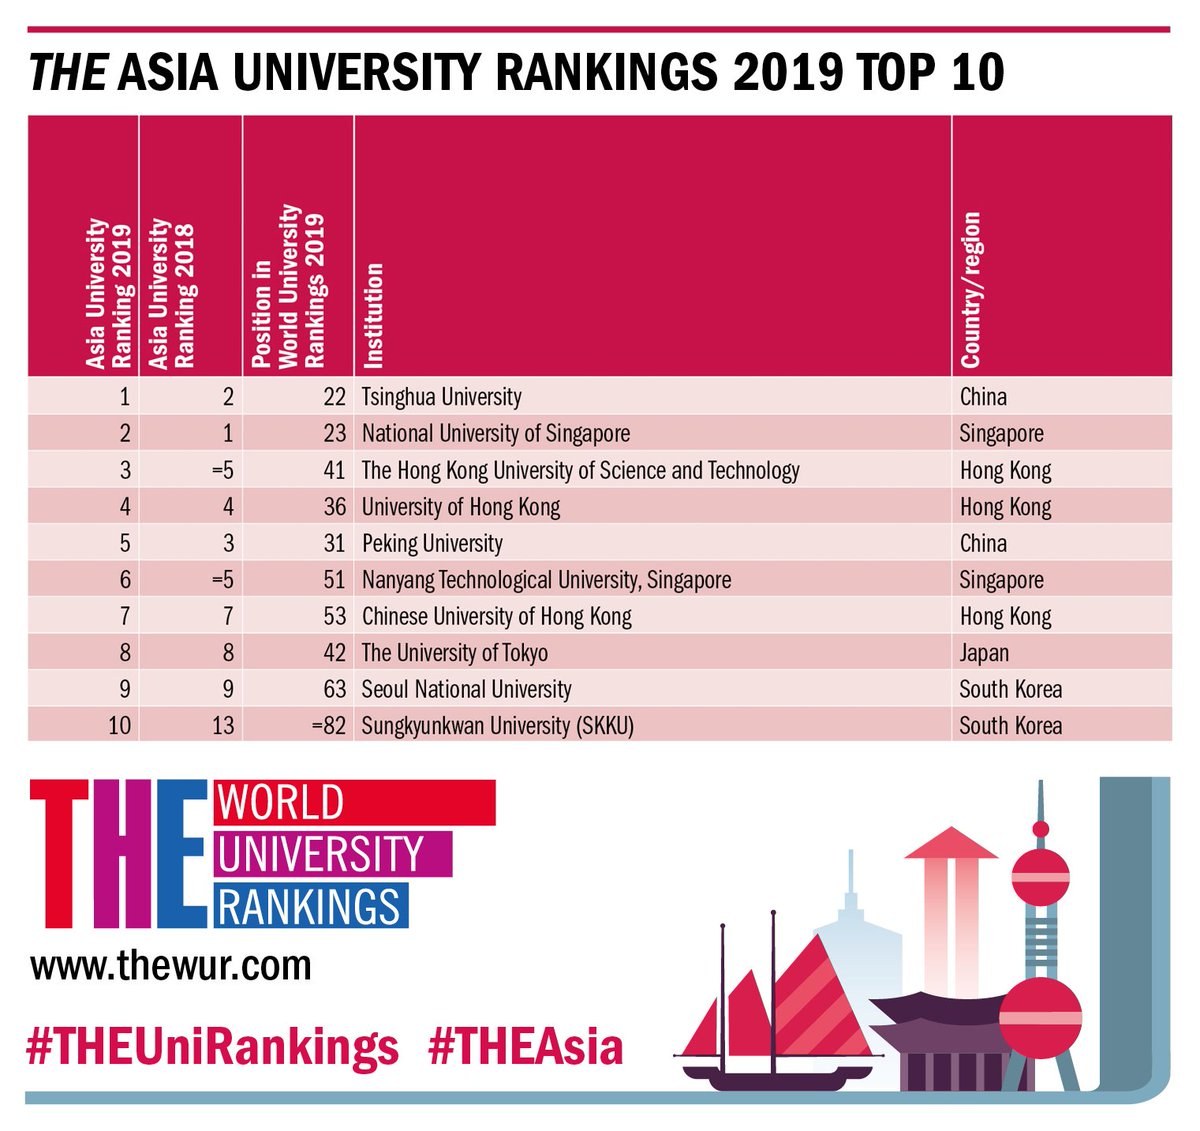 World Uni Rankings on Twitter: